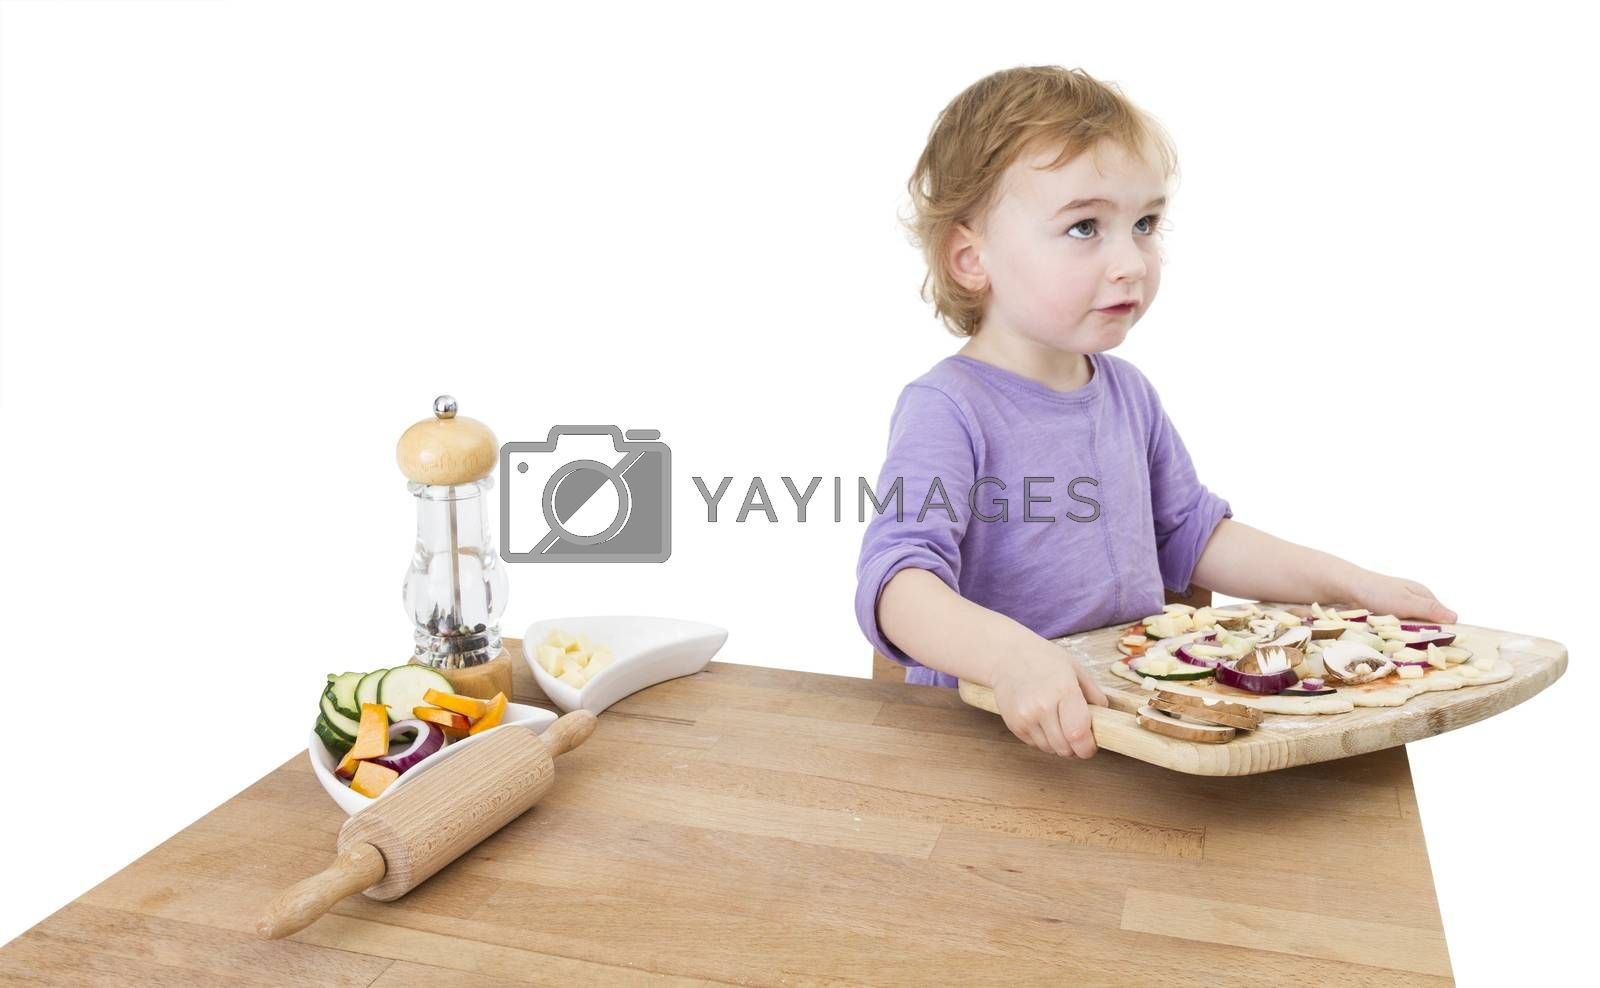 Royalty free image of child with home made pizza by gewoldi